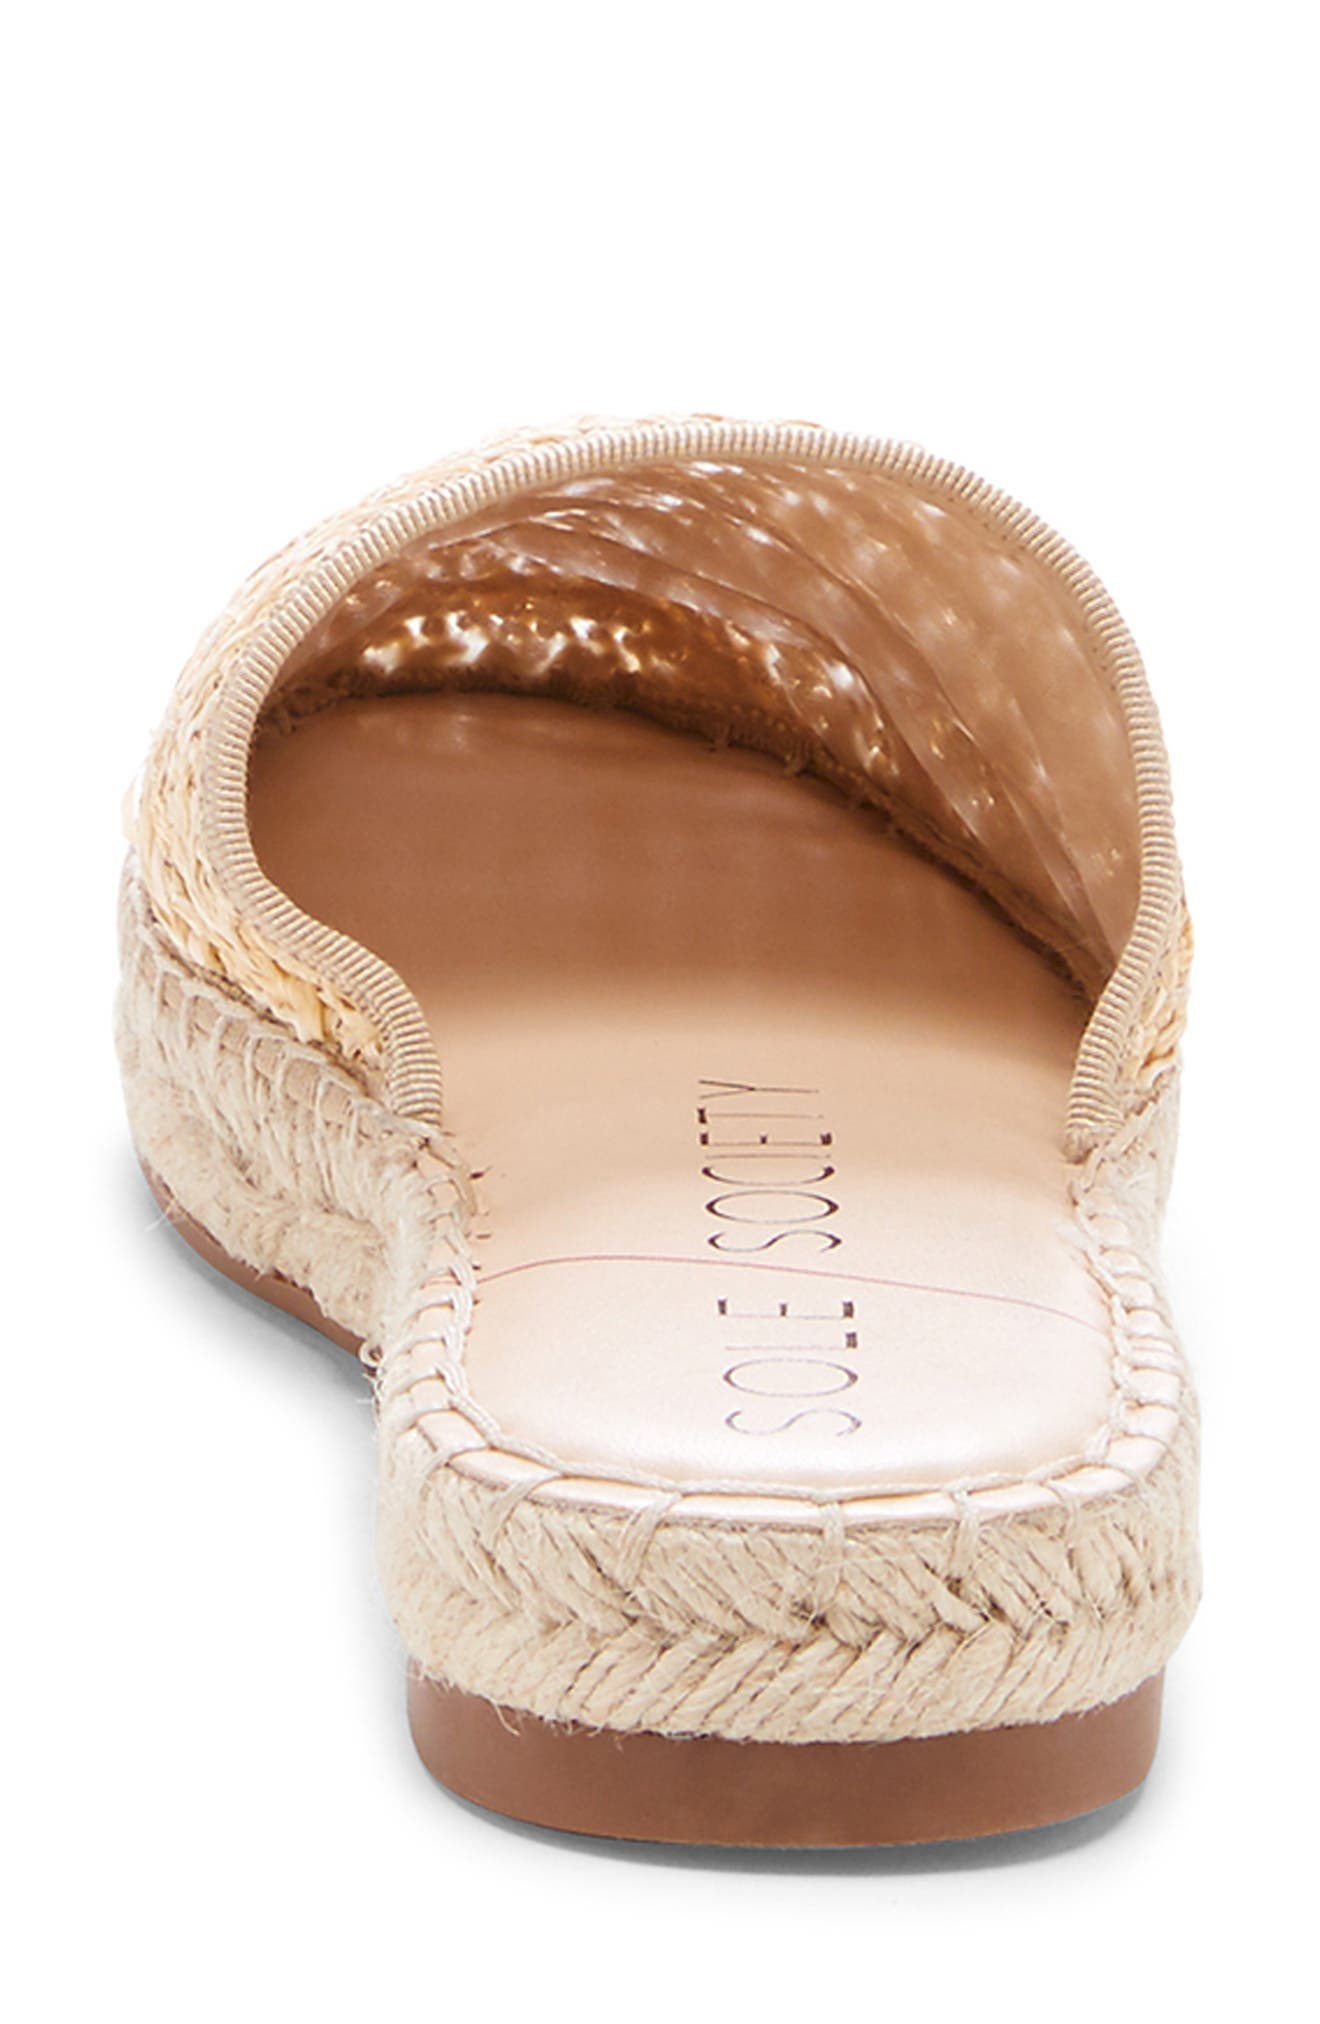 SOLE SOCIETY, Sadelle Espadrille Mule, Alternate thumbnail 7, color, NATURAL FABRIC